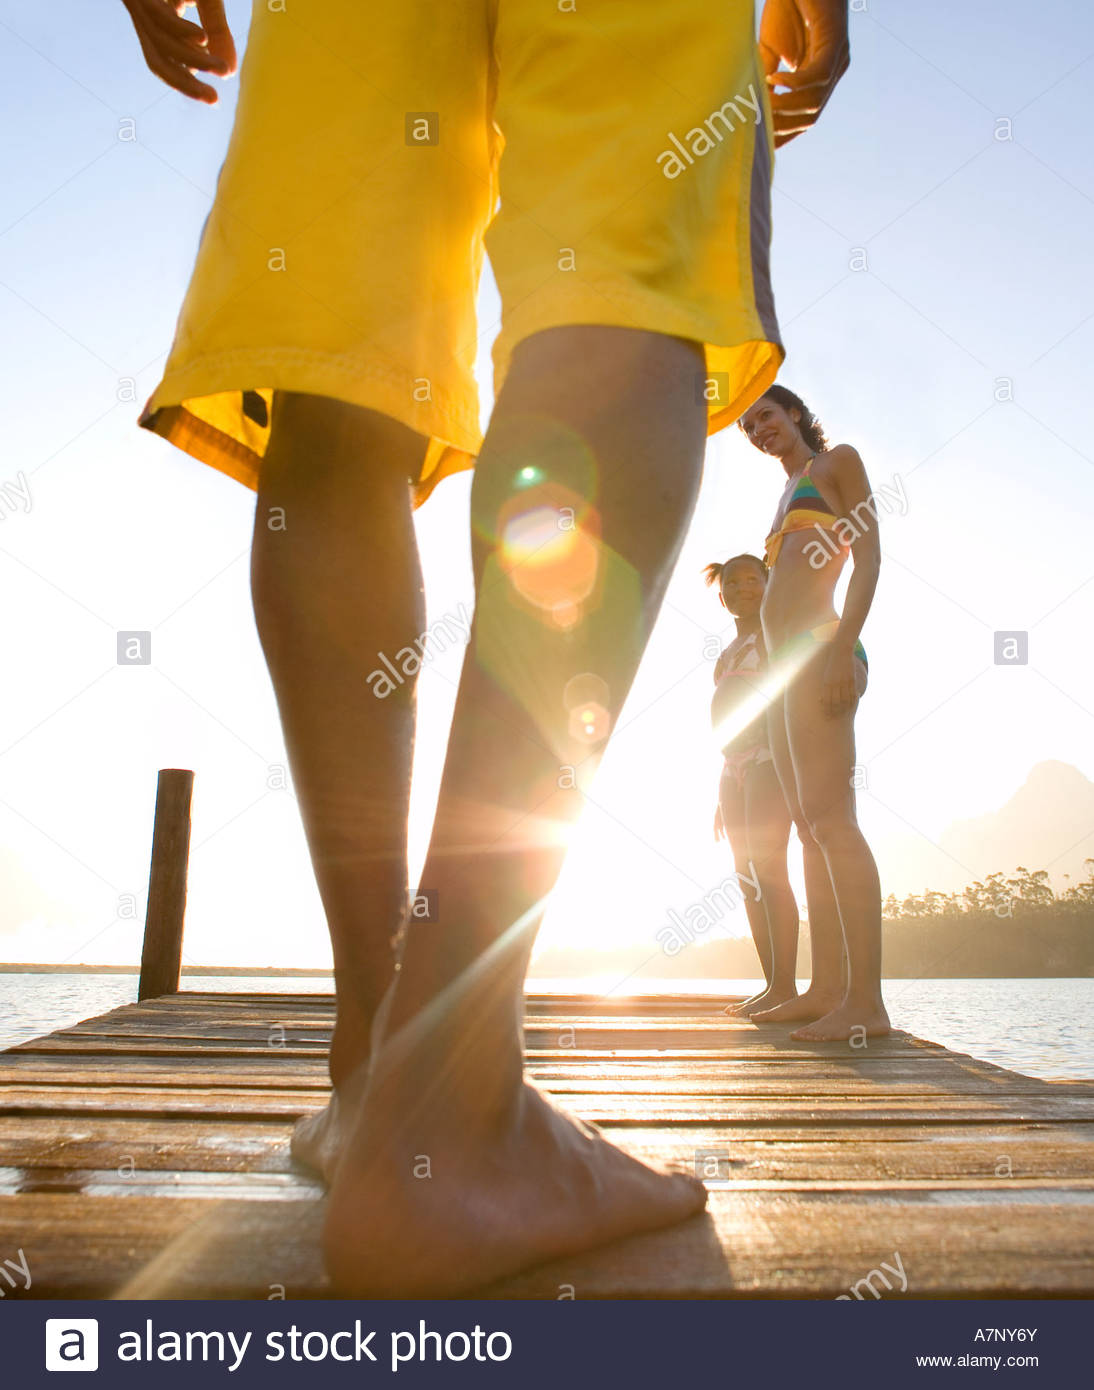 Family standing on jetty man in yellow swimming shorts preparing to jump into lake low section rear view surface - Stock Image